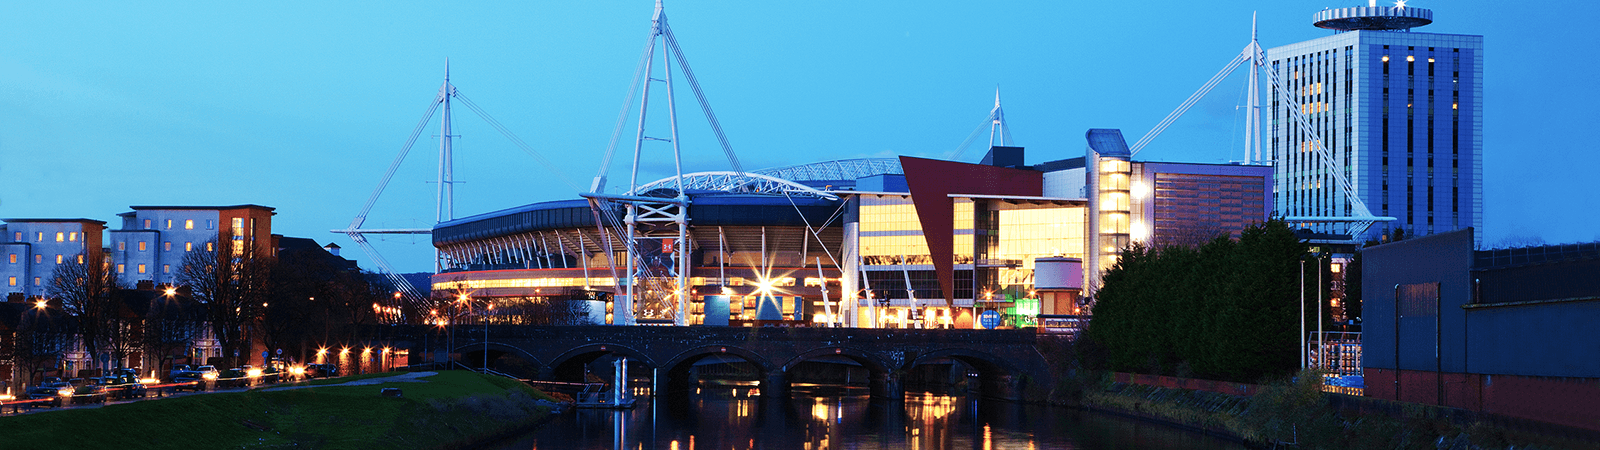 The Principality Stadium in Cardiff at night.